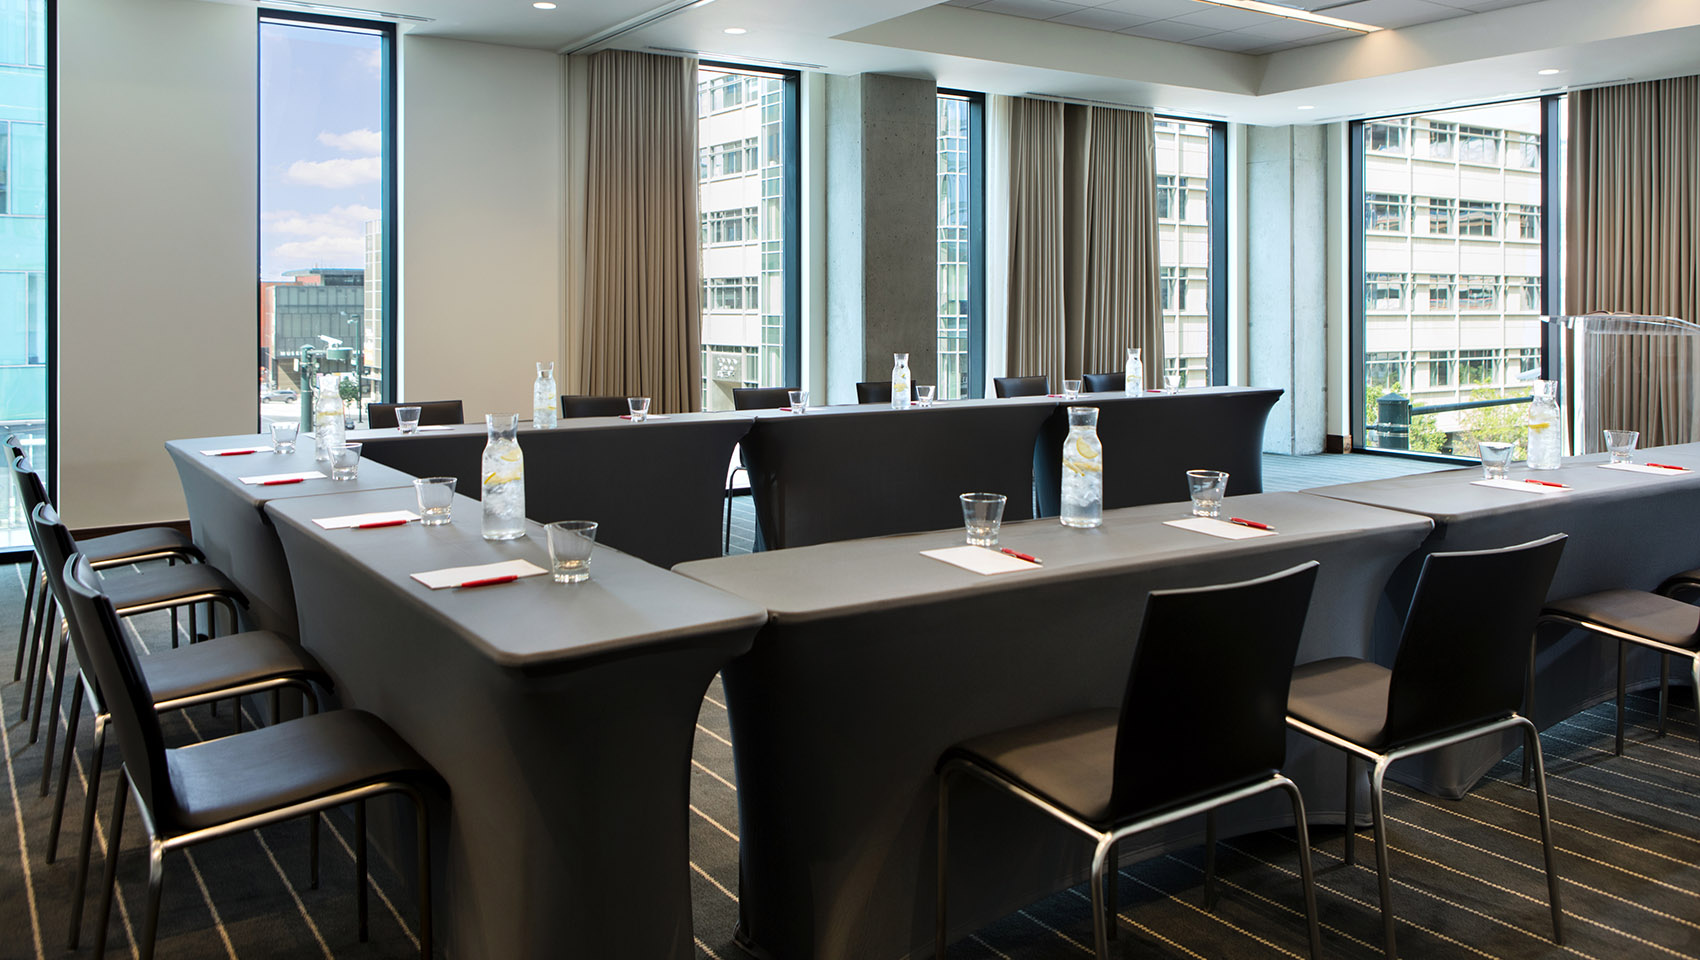 kenosha-boardroom-meeting-classroom-setup-denver-born